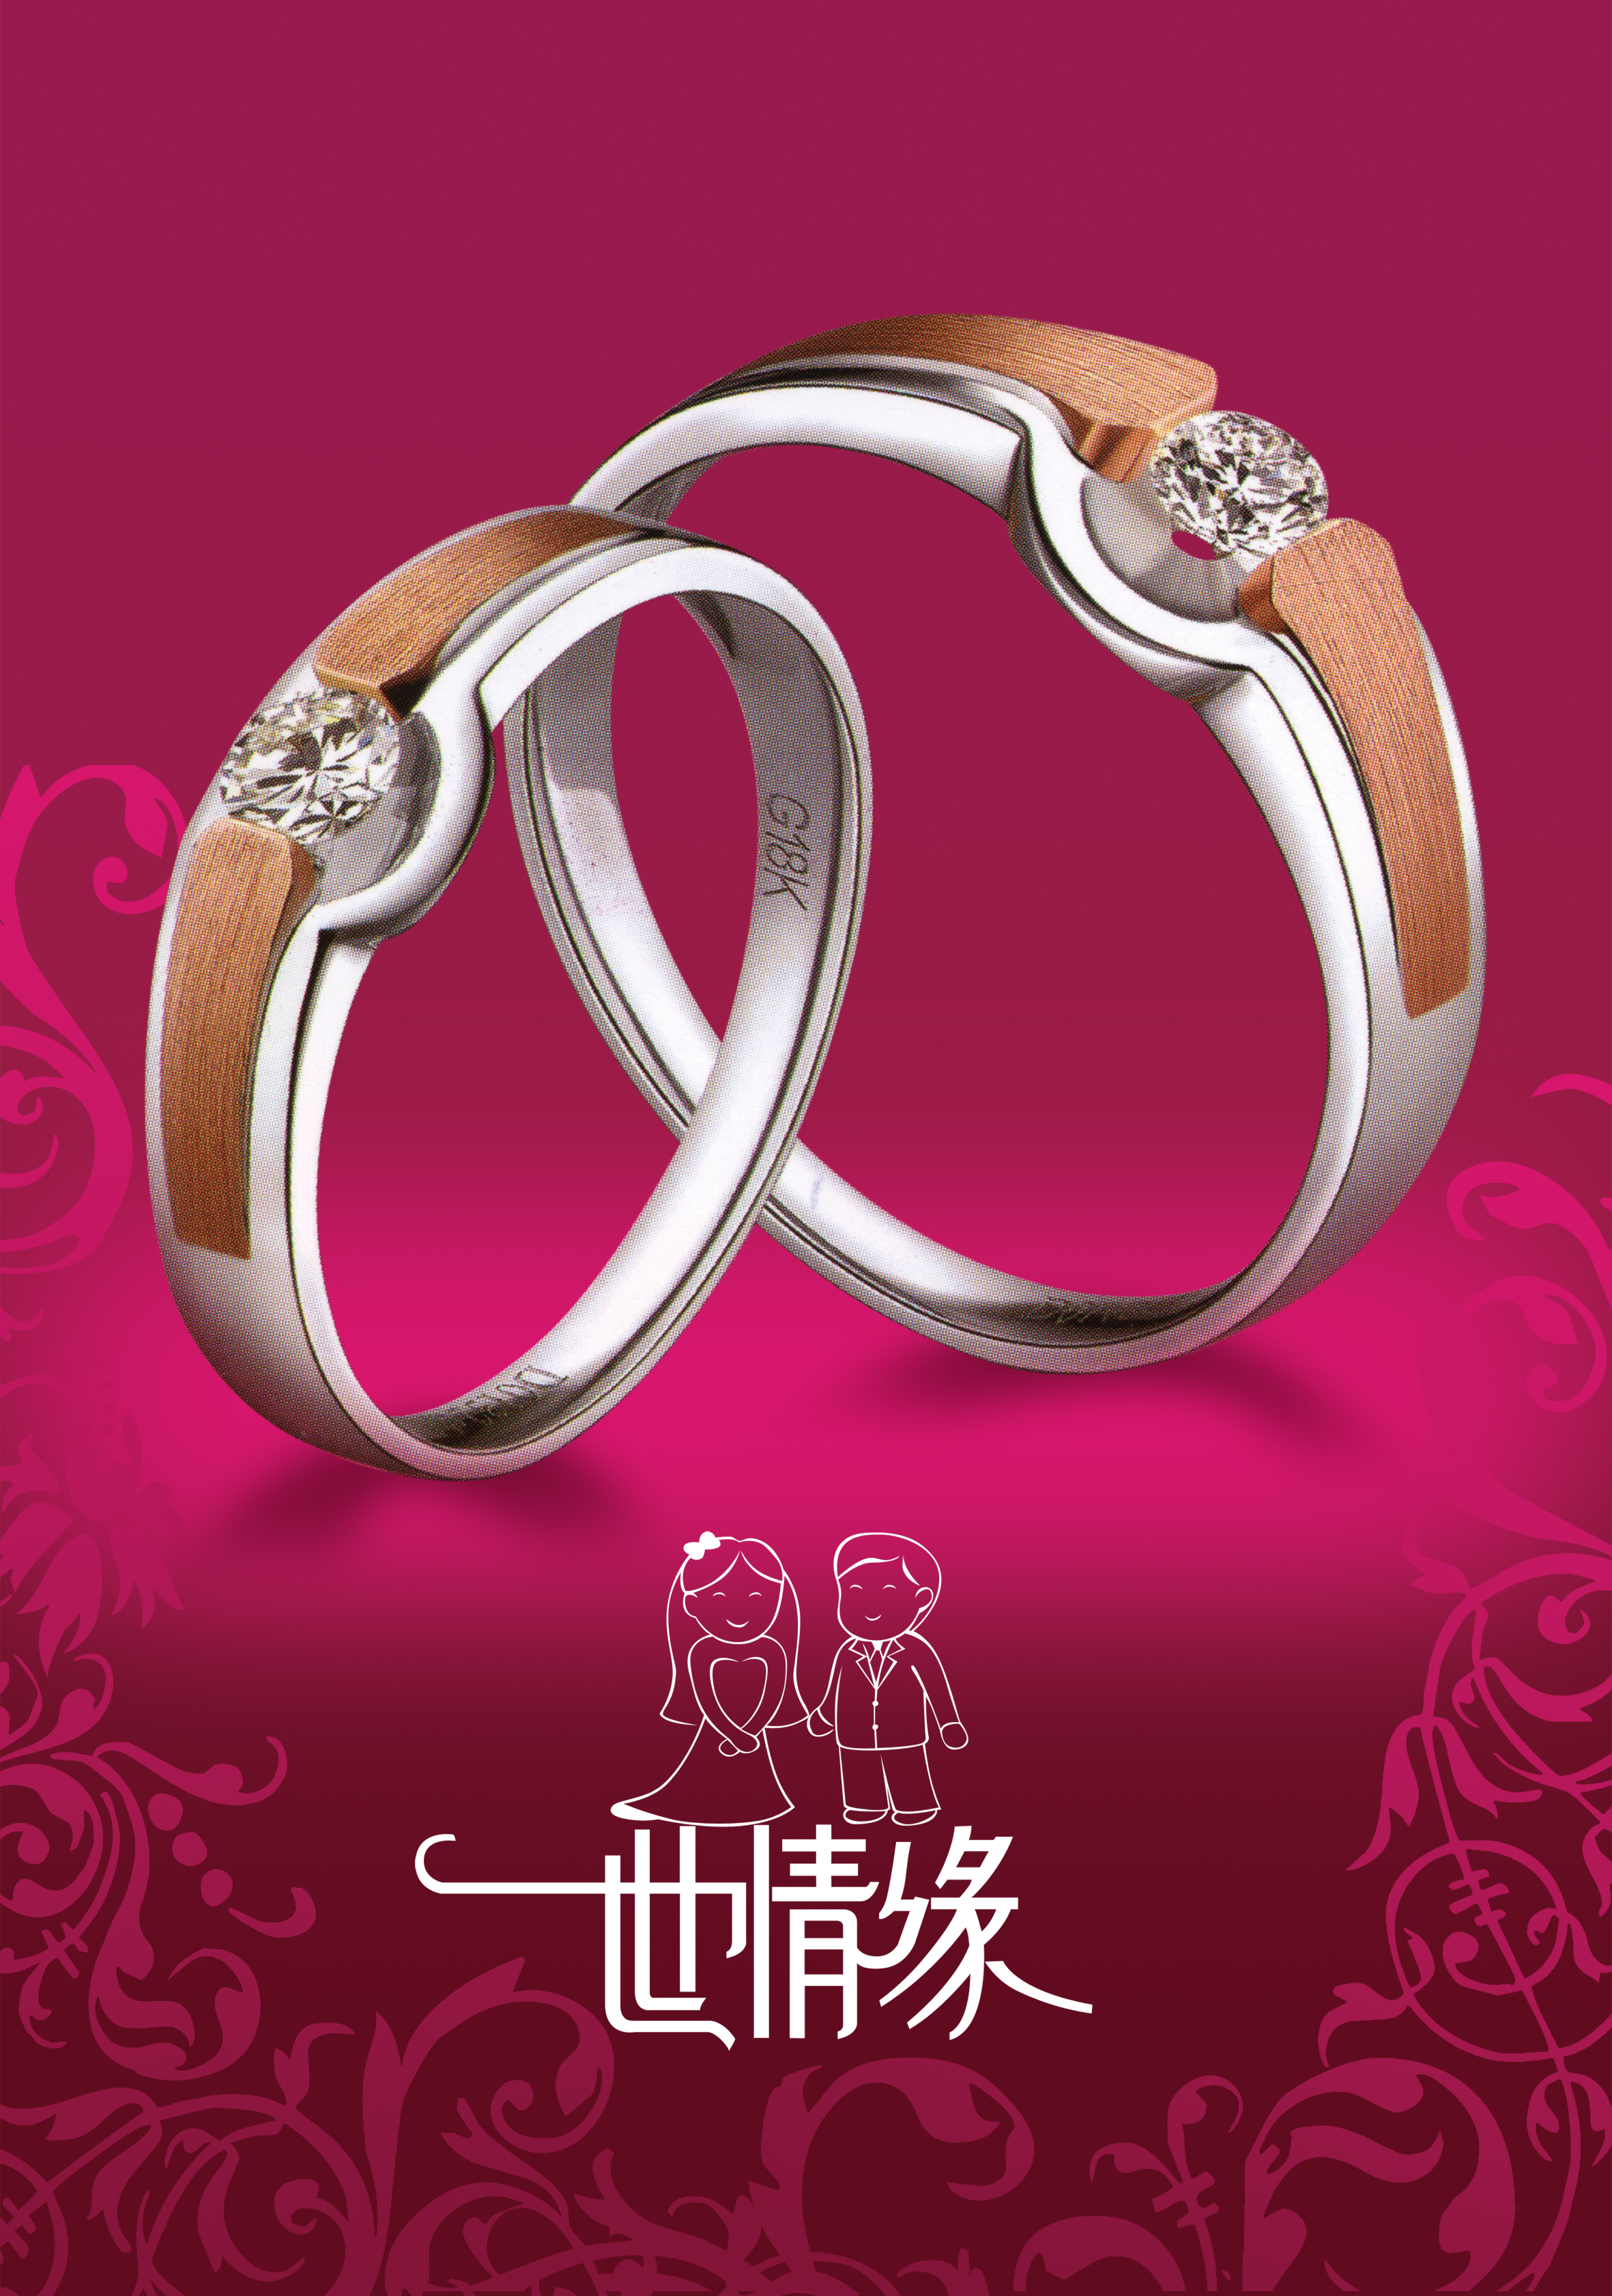 Romantic Wedding Ring Advertising Creative Background, Wedding Ring ...